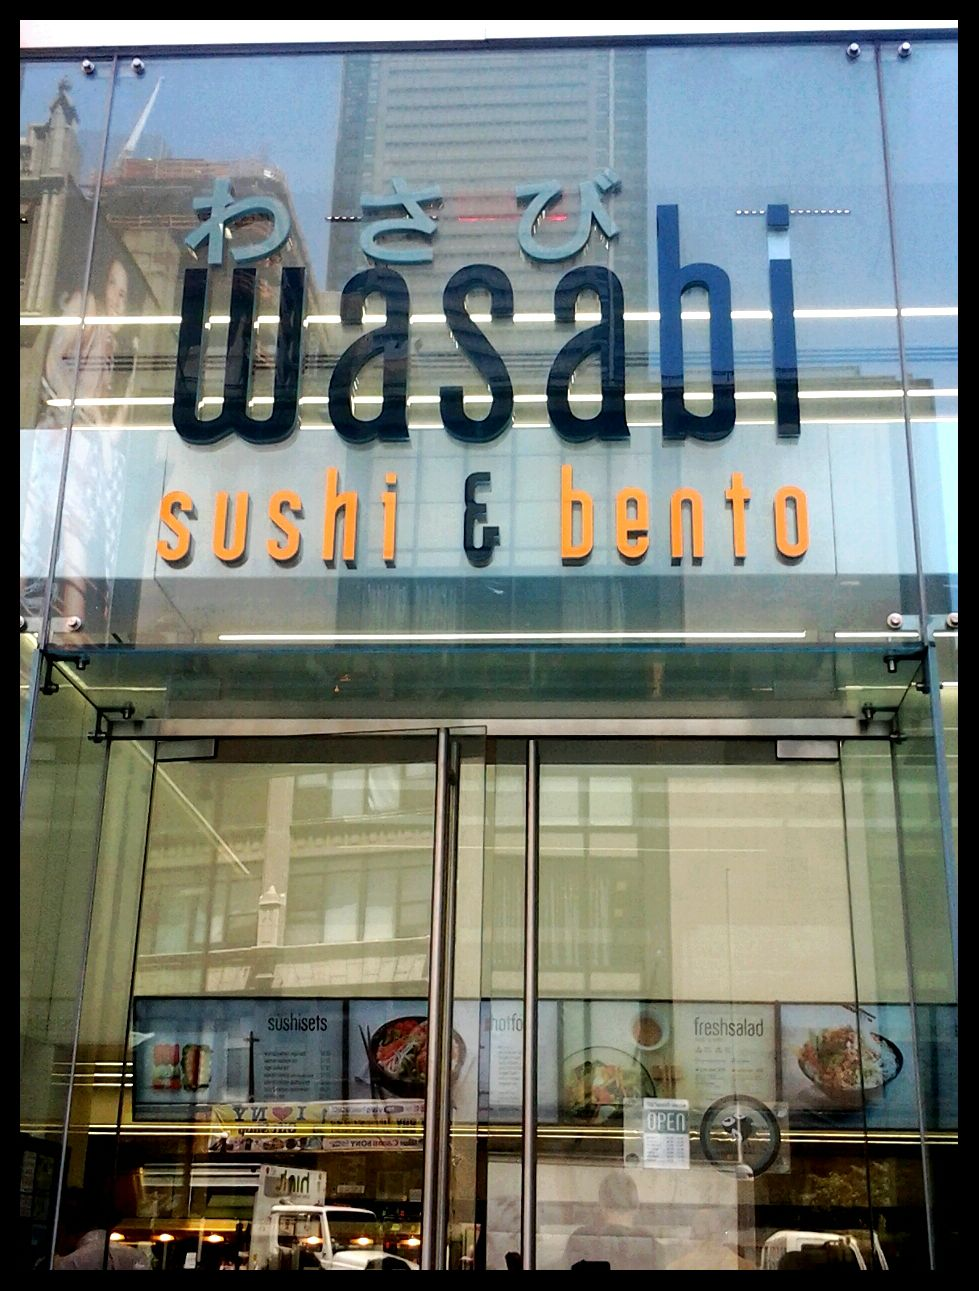 Wasabi Sushi amp; Bento Times Square  Review — The Buppie Foodie